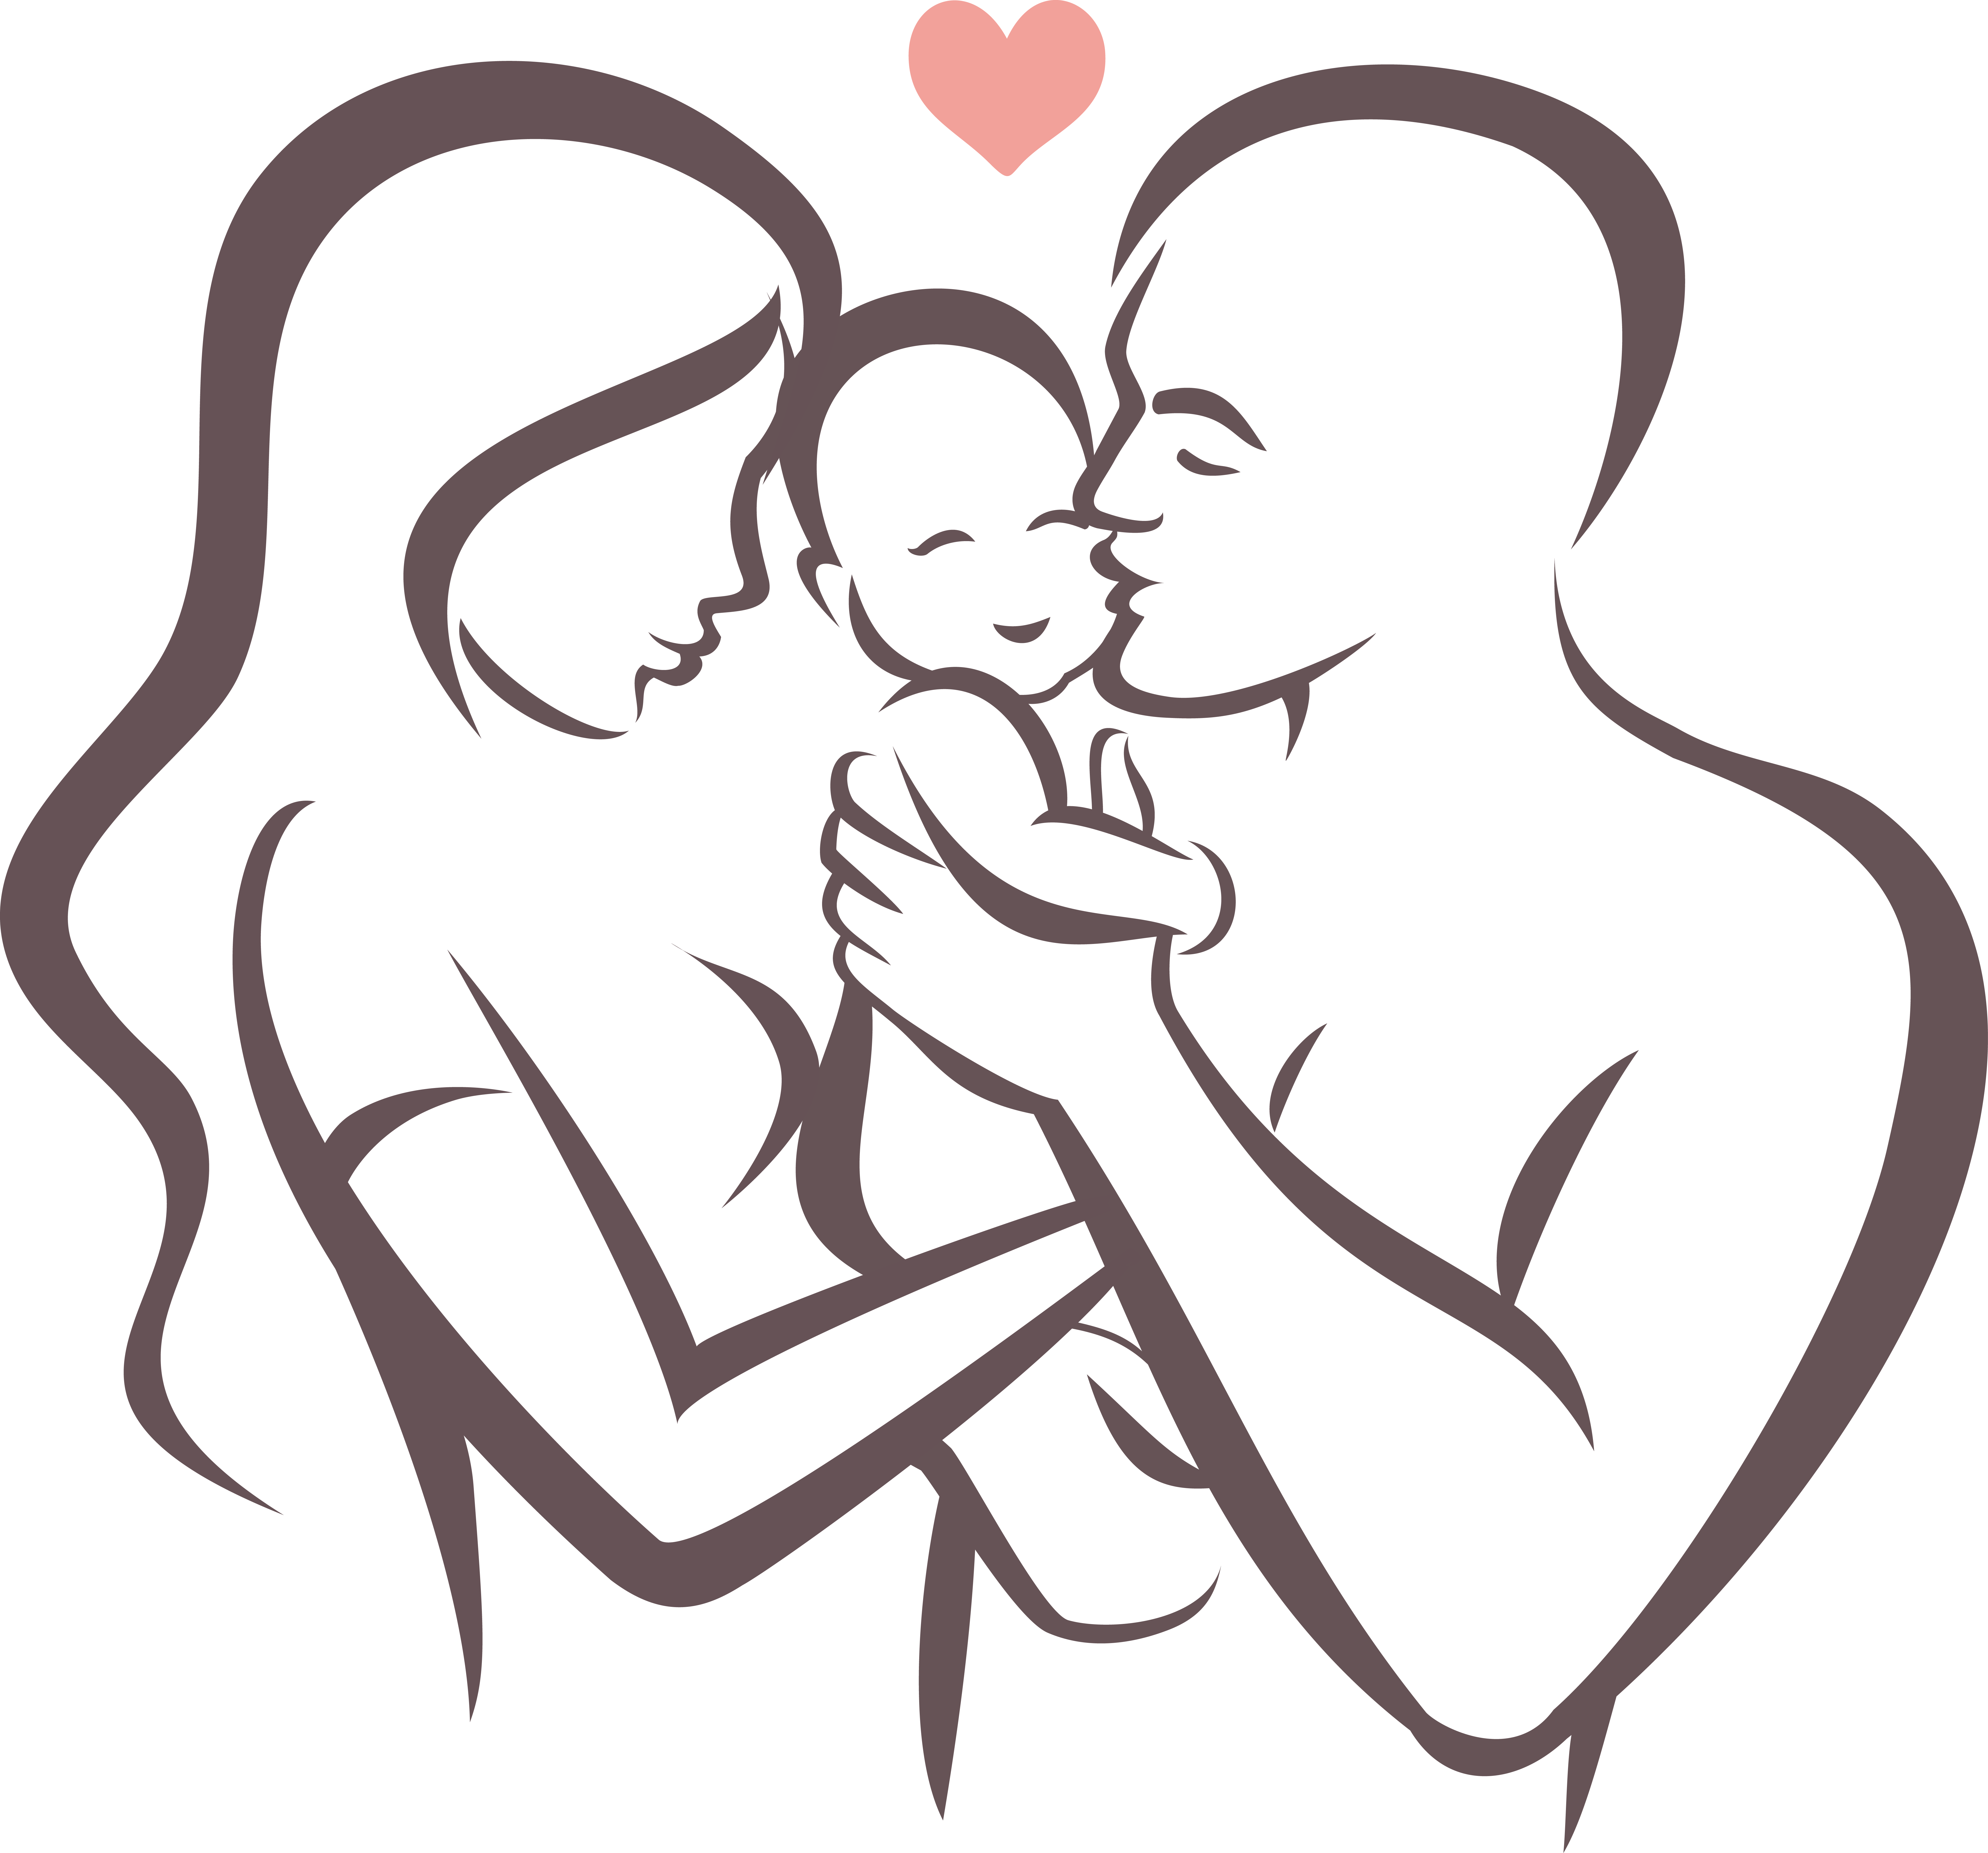 Drawing family. Father symbol stock illustration